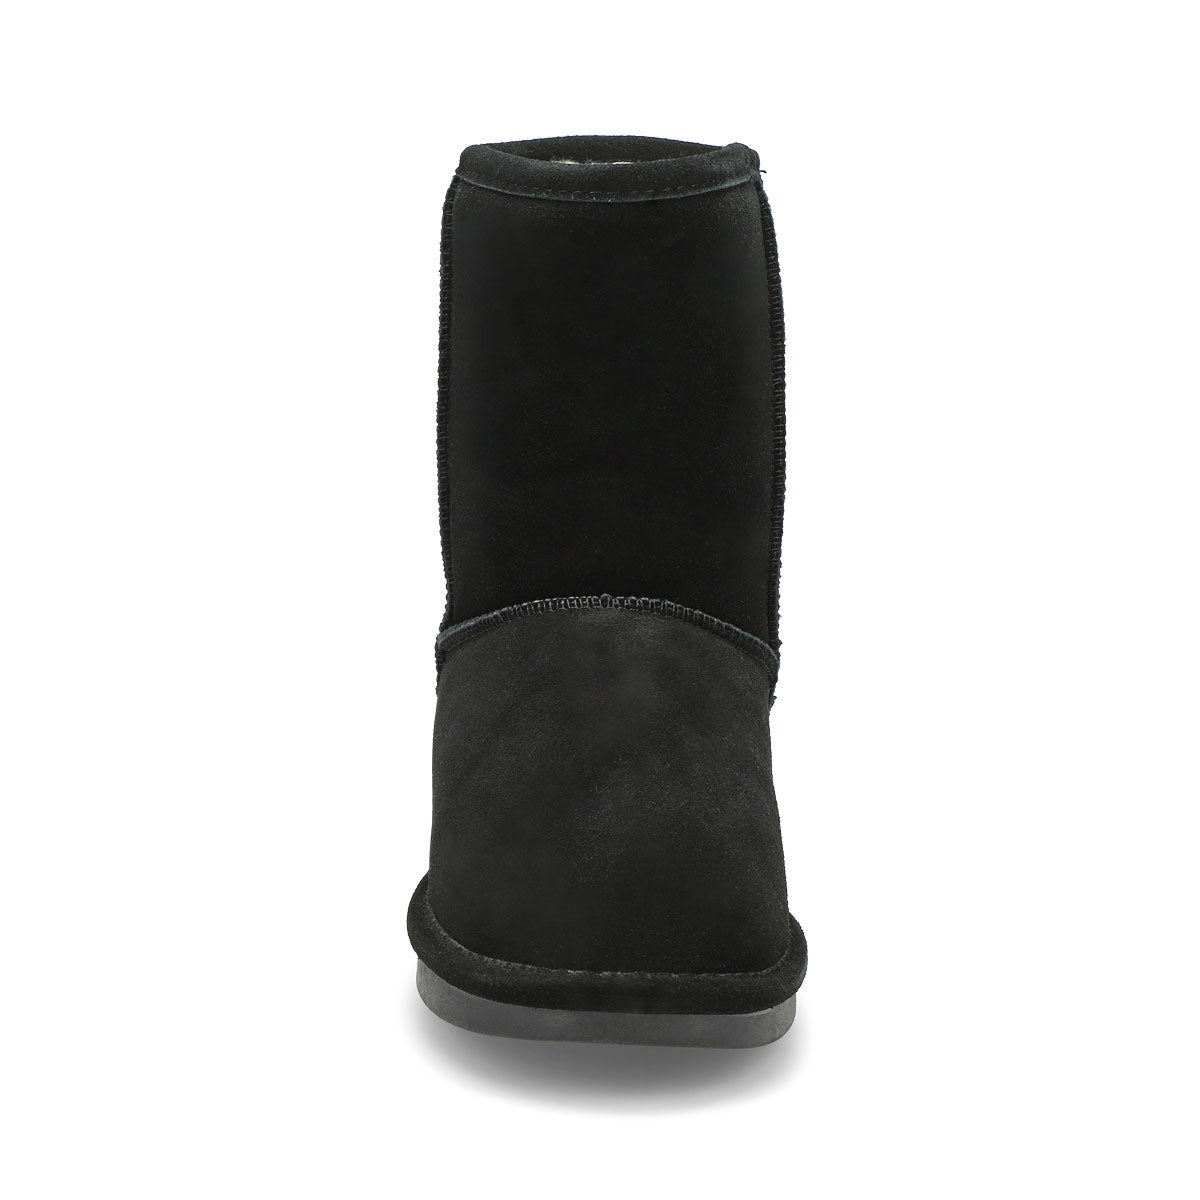 Lds Smocs 5 black mid suede boot